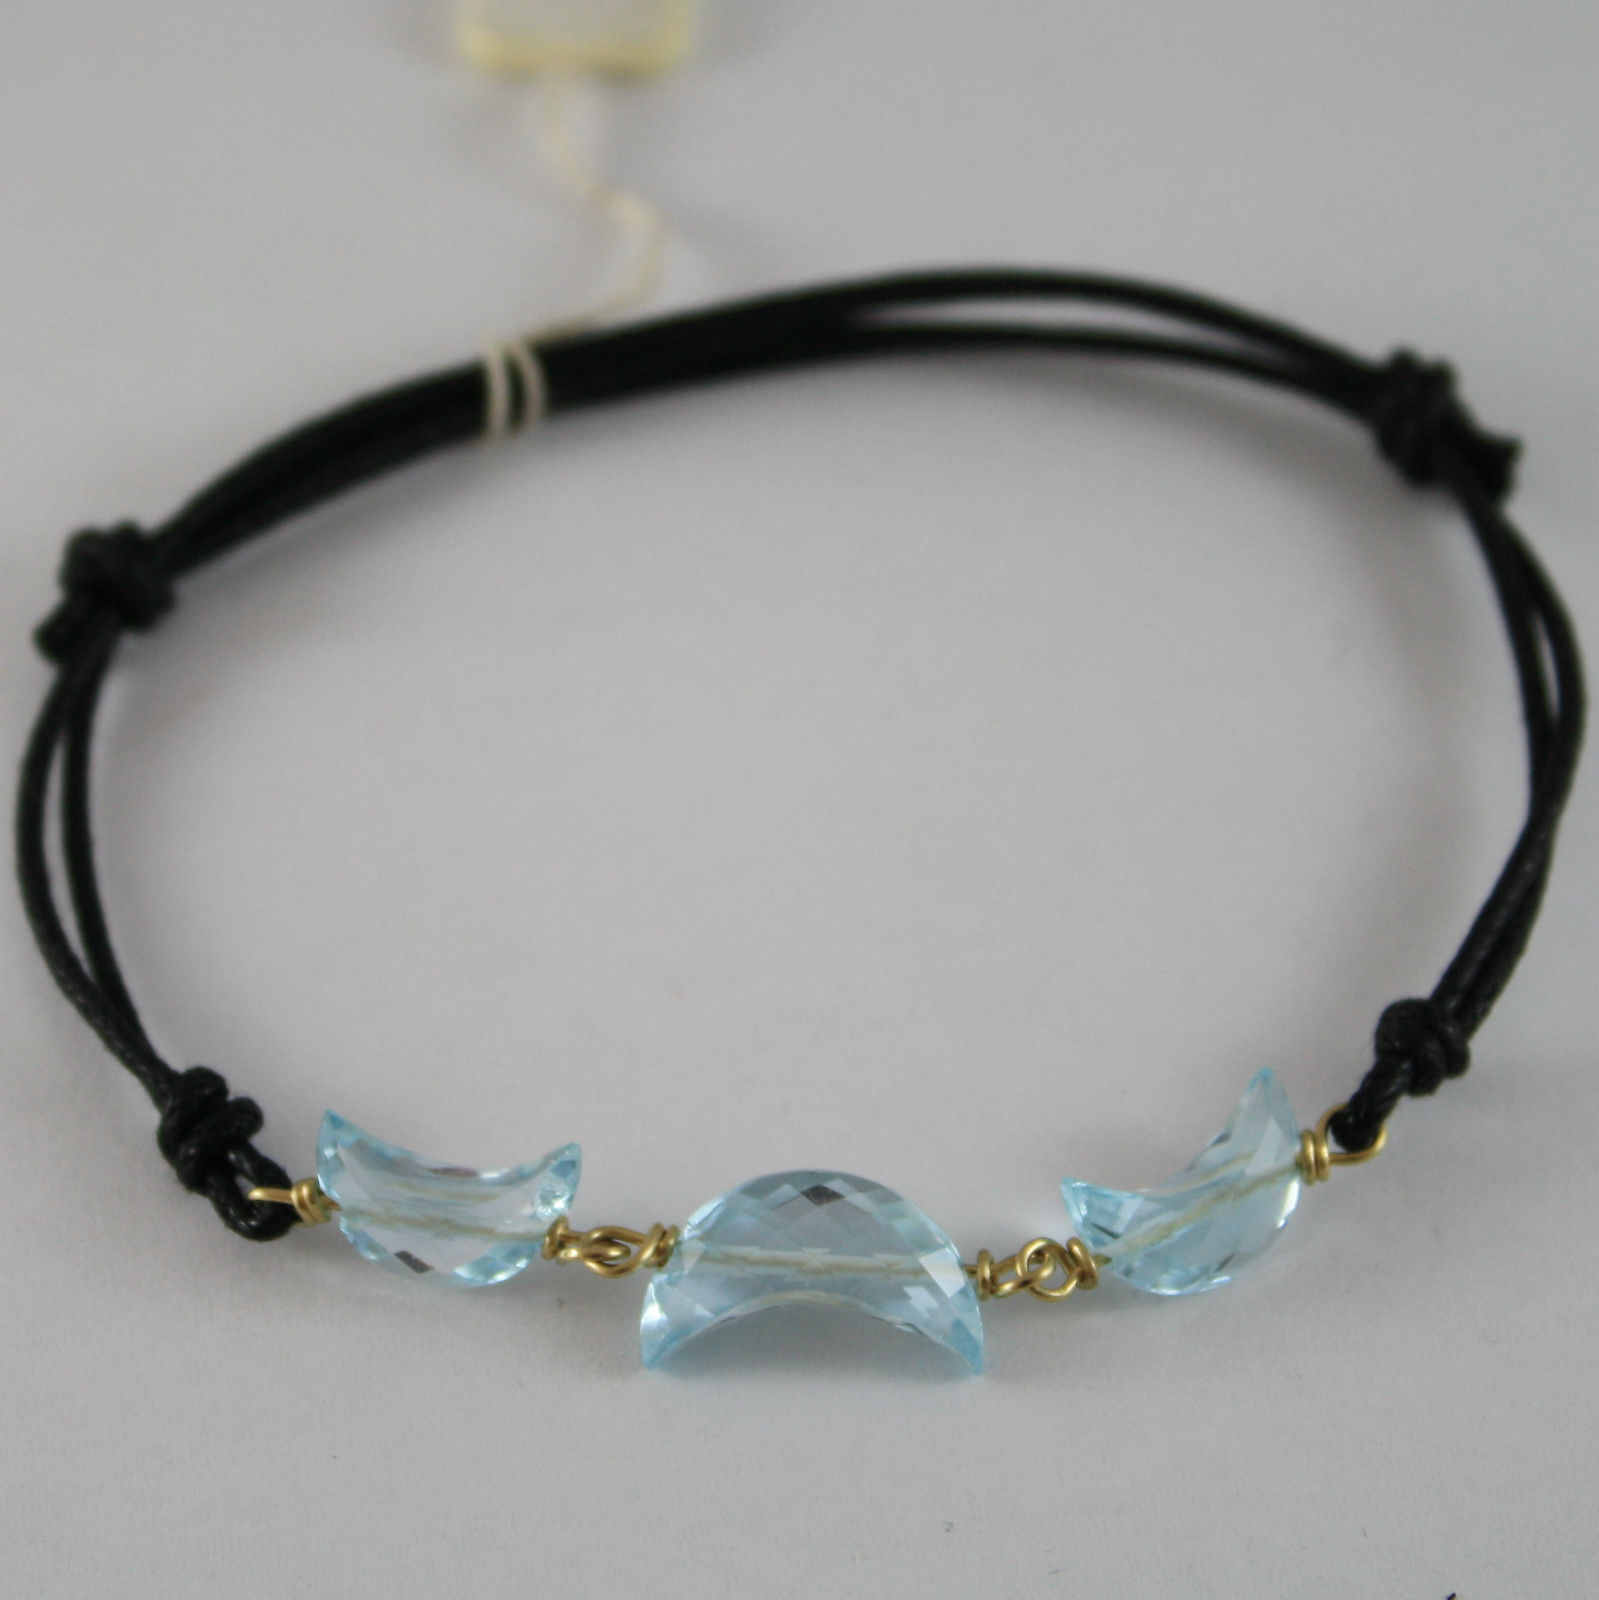 SOLID 18K YELLOW GOLD BRACELET WITH MOON FACETED BLUE TOPAZ, MADE IN ITALY